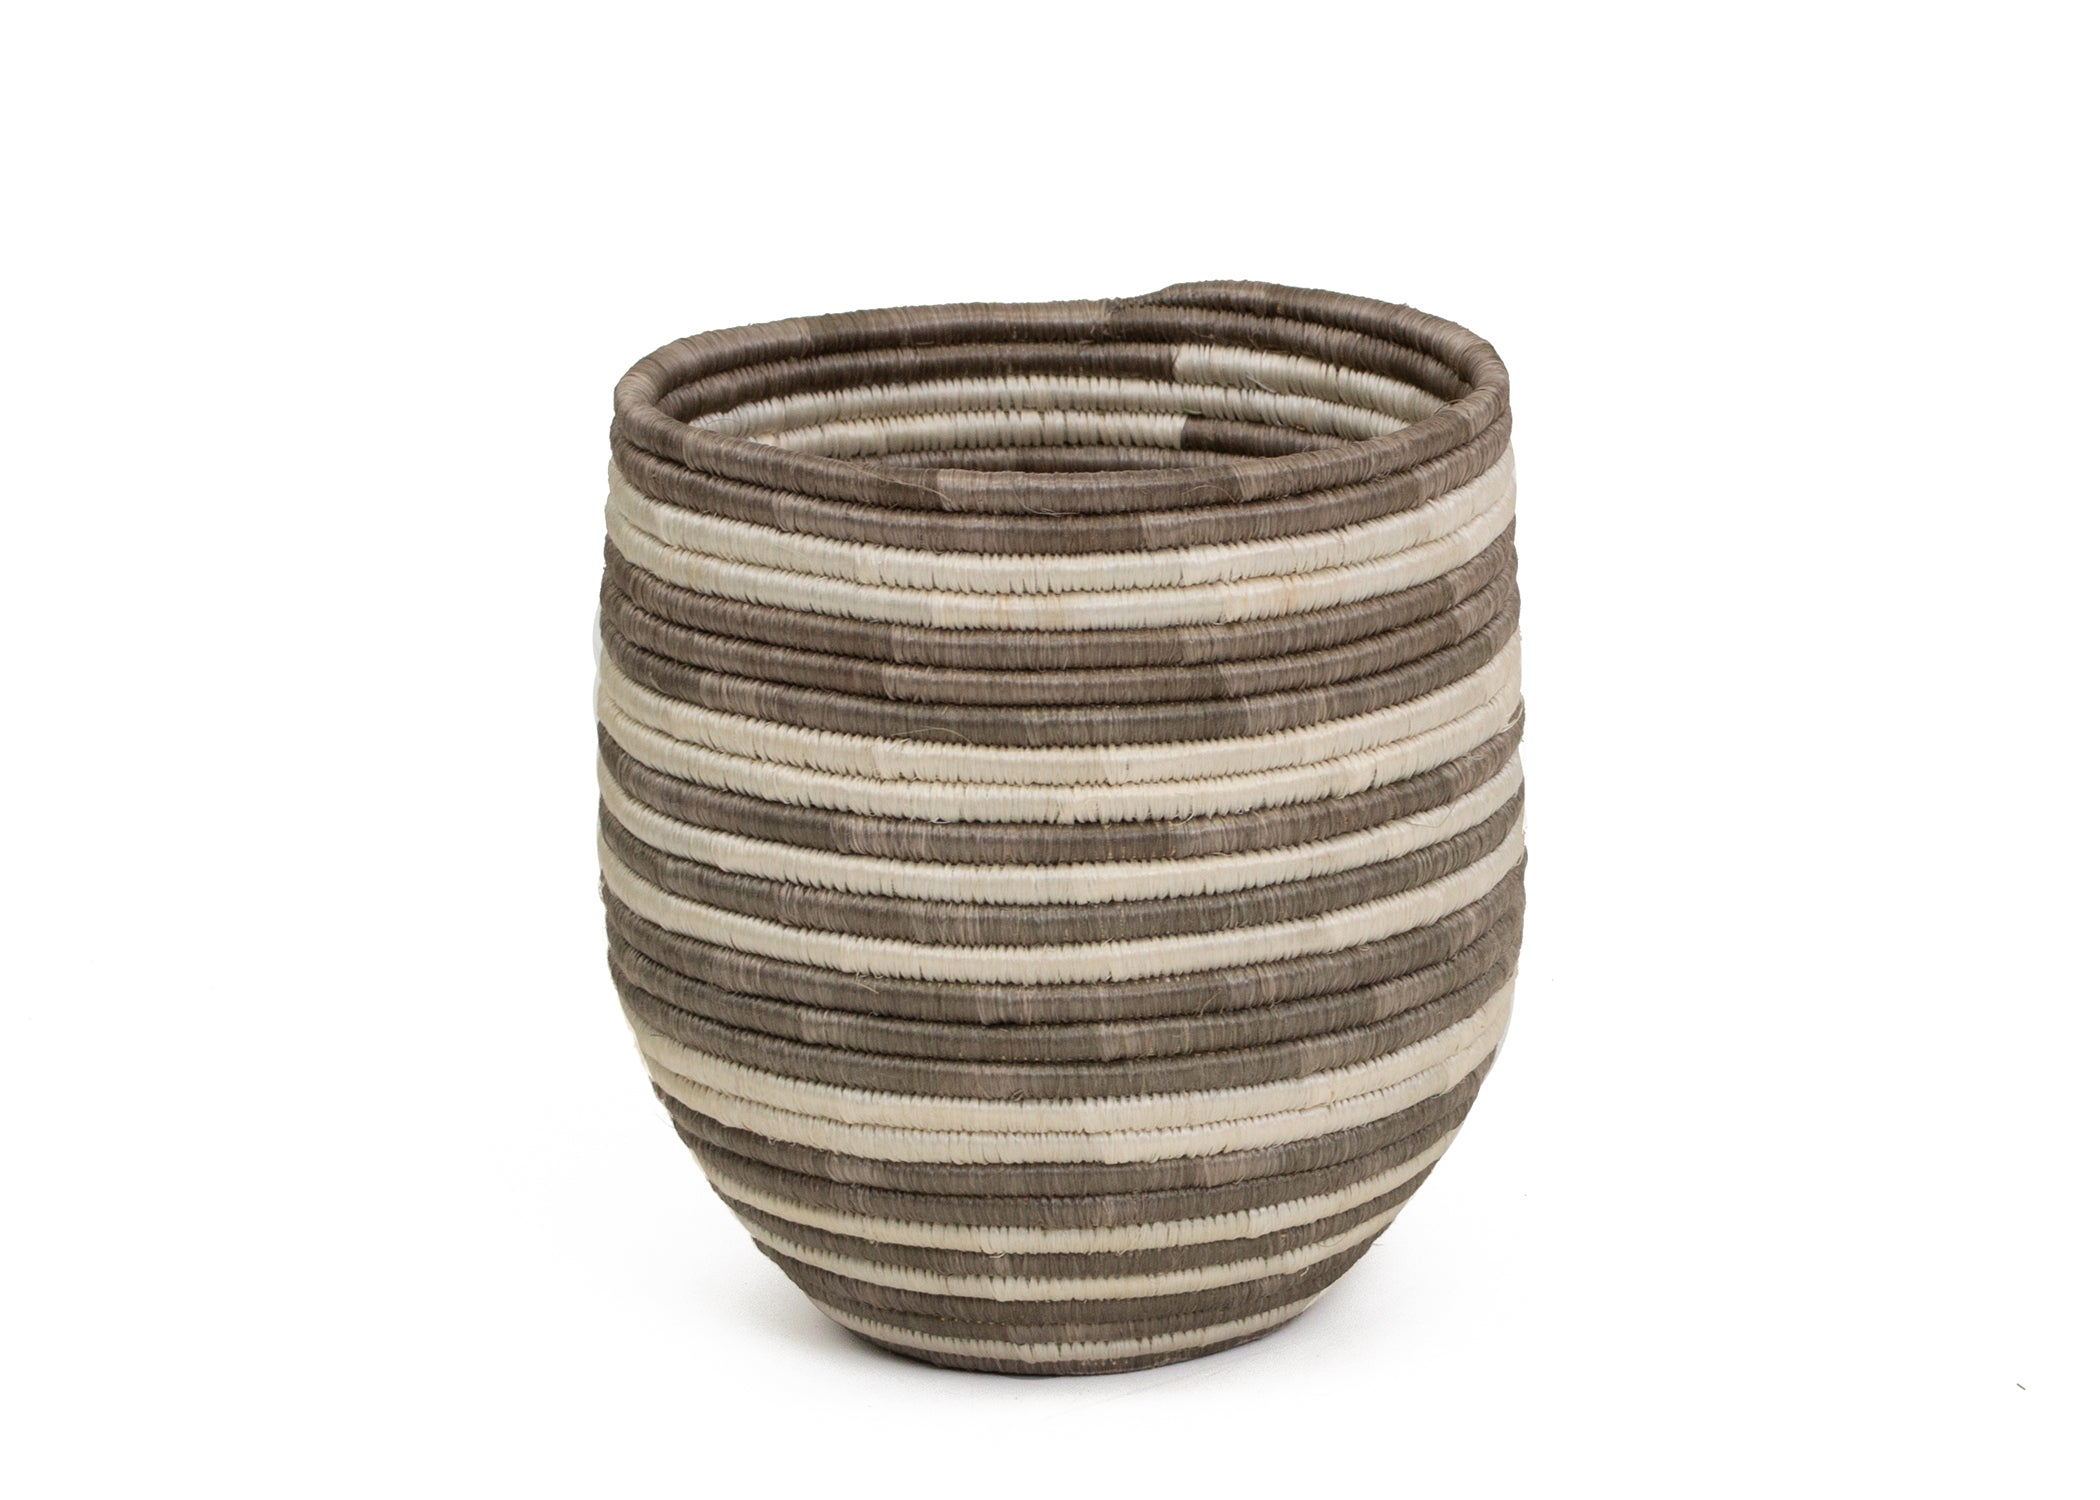 Light Taupe Striped Dunia Vase - KAZI - Artisan made high quality home decor and wall art